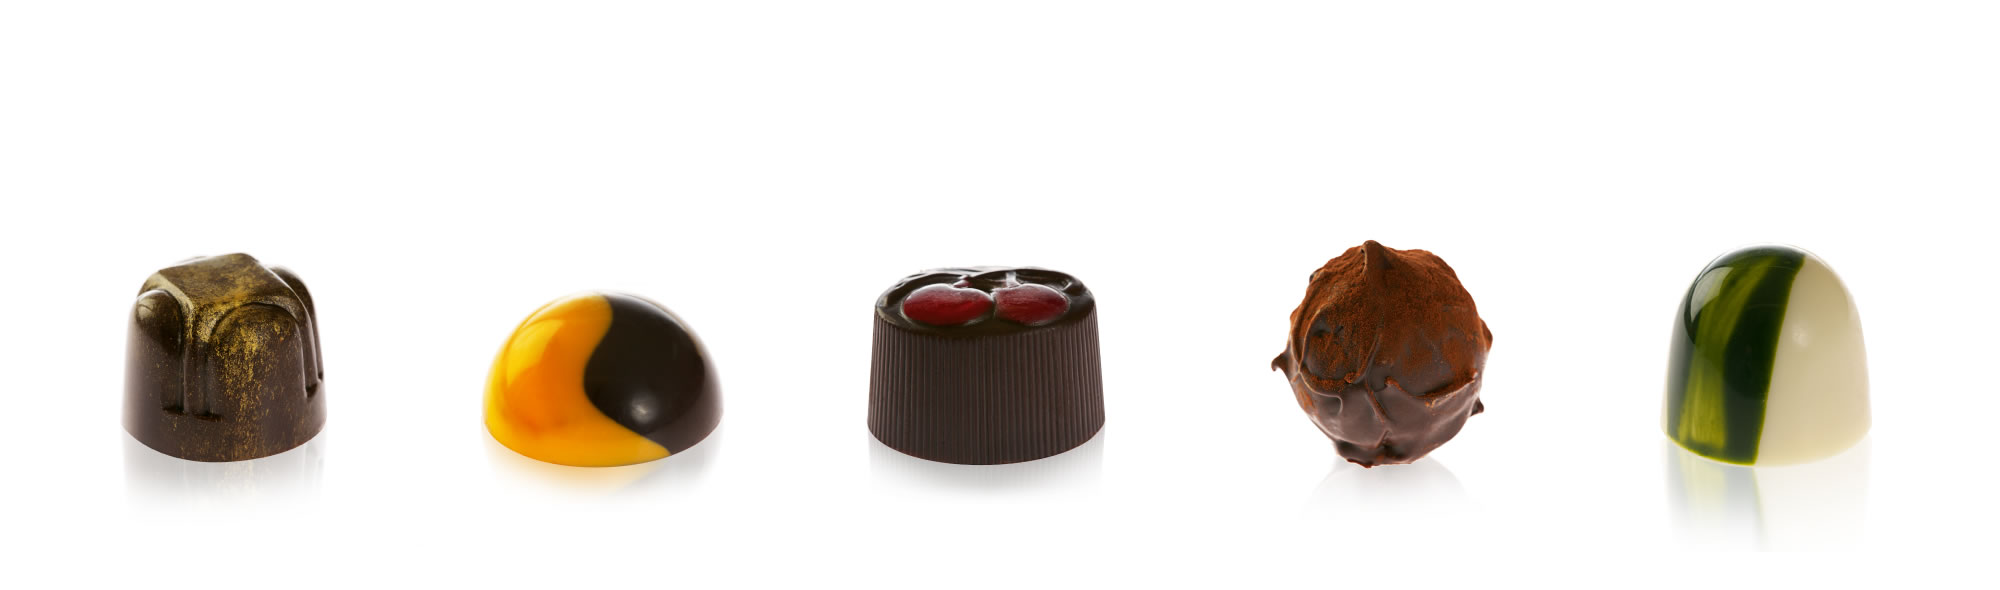 Exquisite handmade chocolates:Shop now >